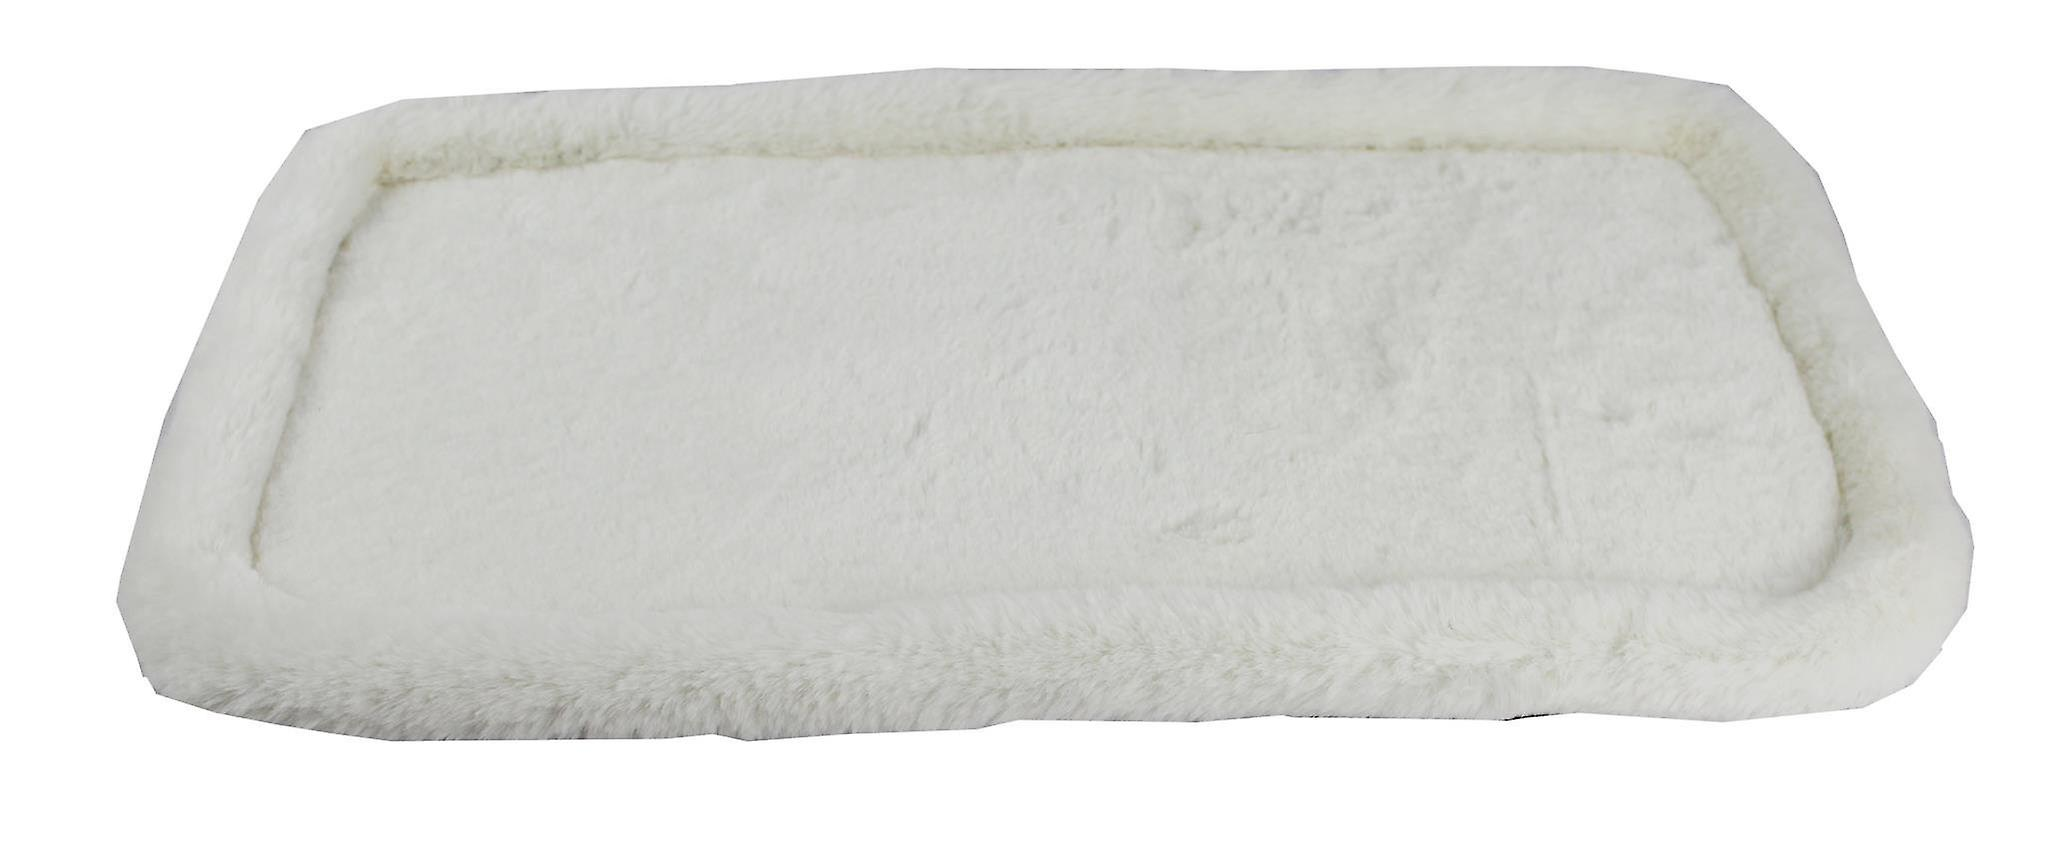 Rhodium series faux fleece pad with plywood base